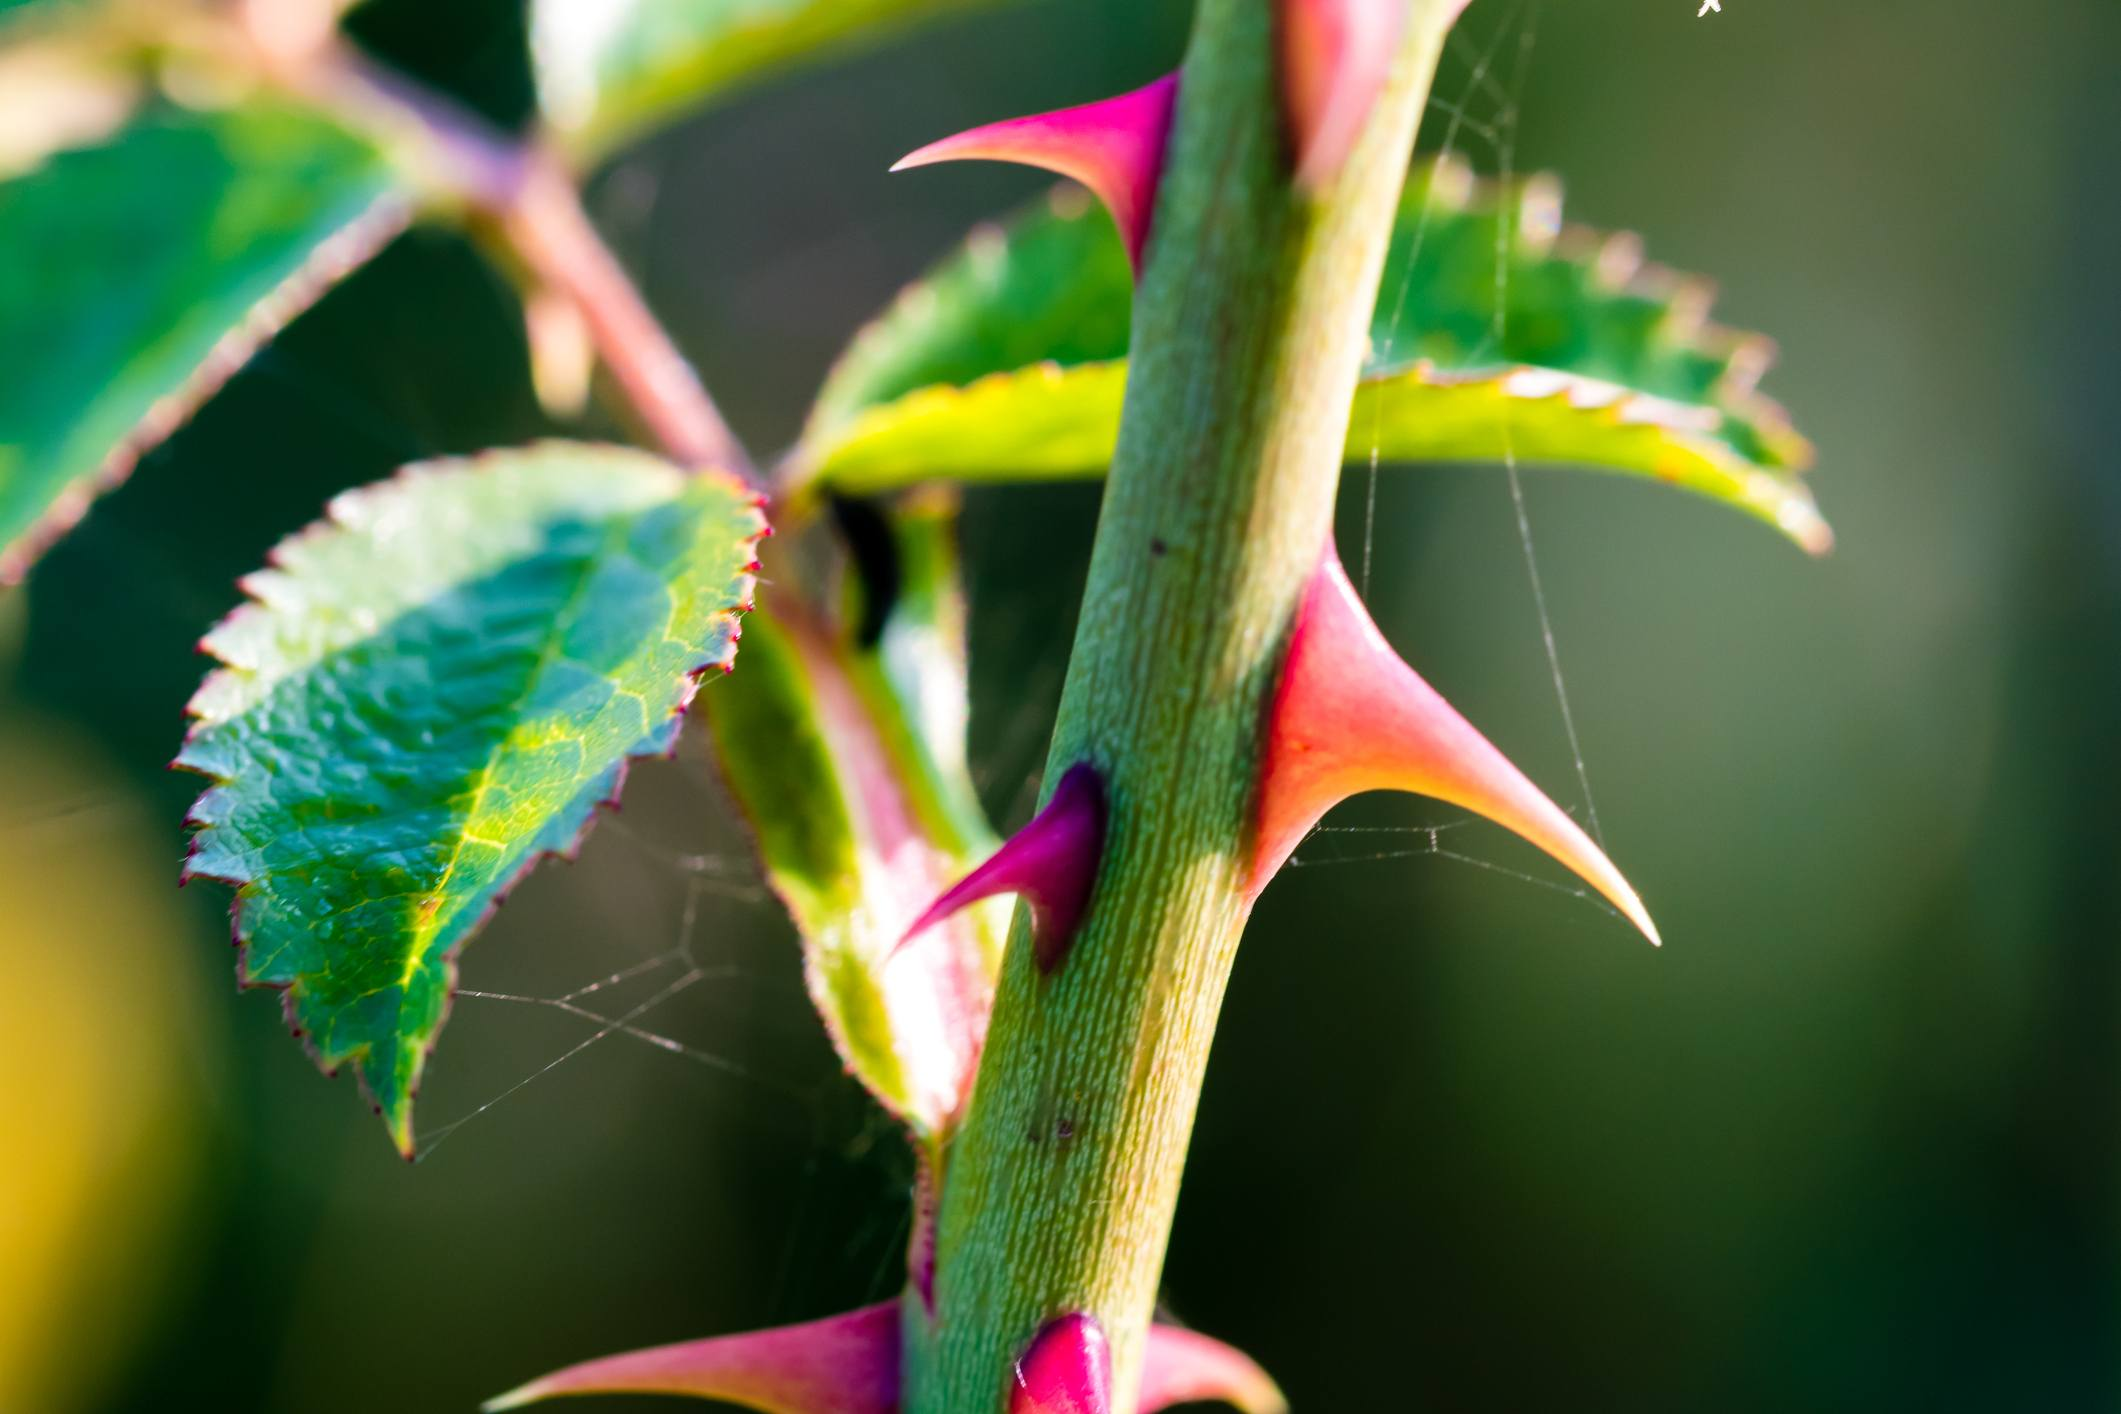 Sharp thorns of a wild rose, close-up shot